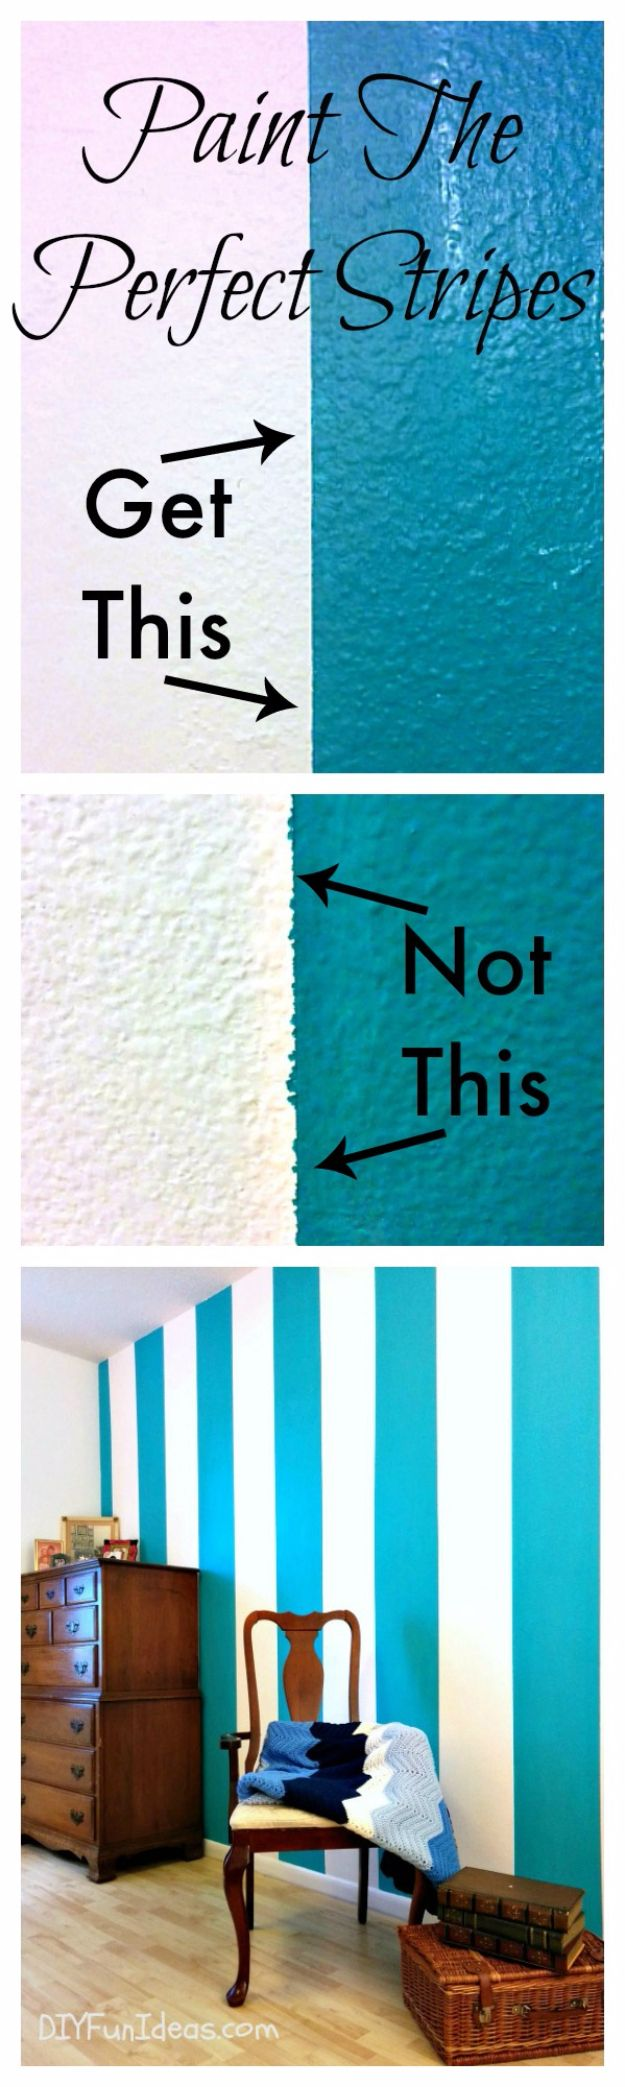 Ideas For Painting Walls best 25+ creative wall painting ideas on pinterest | stencil